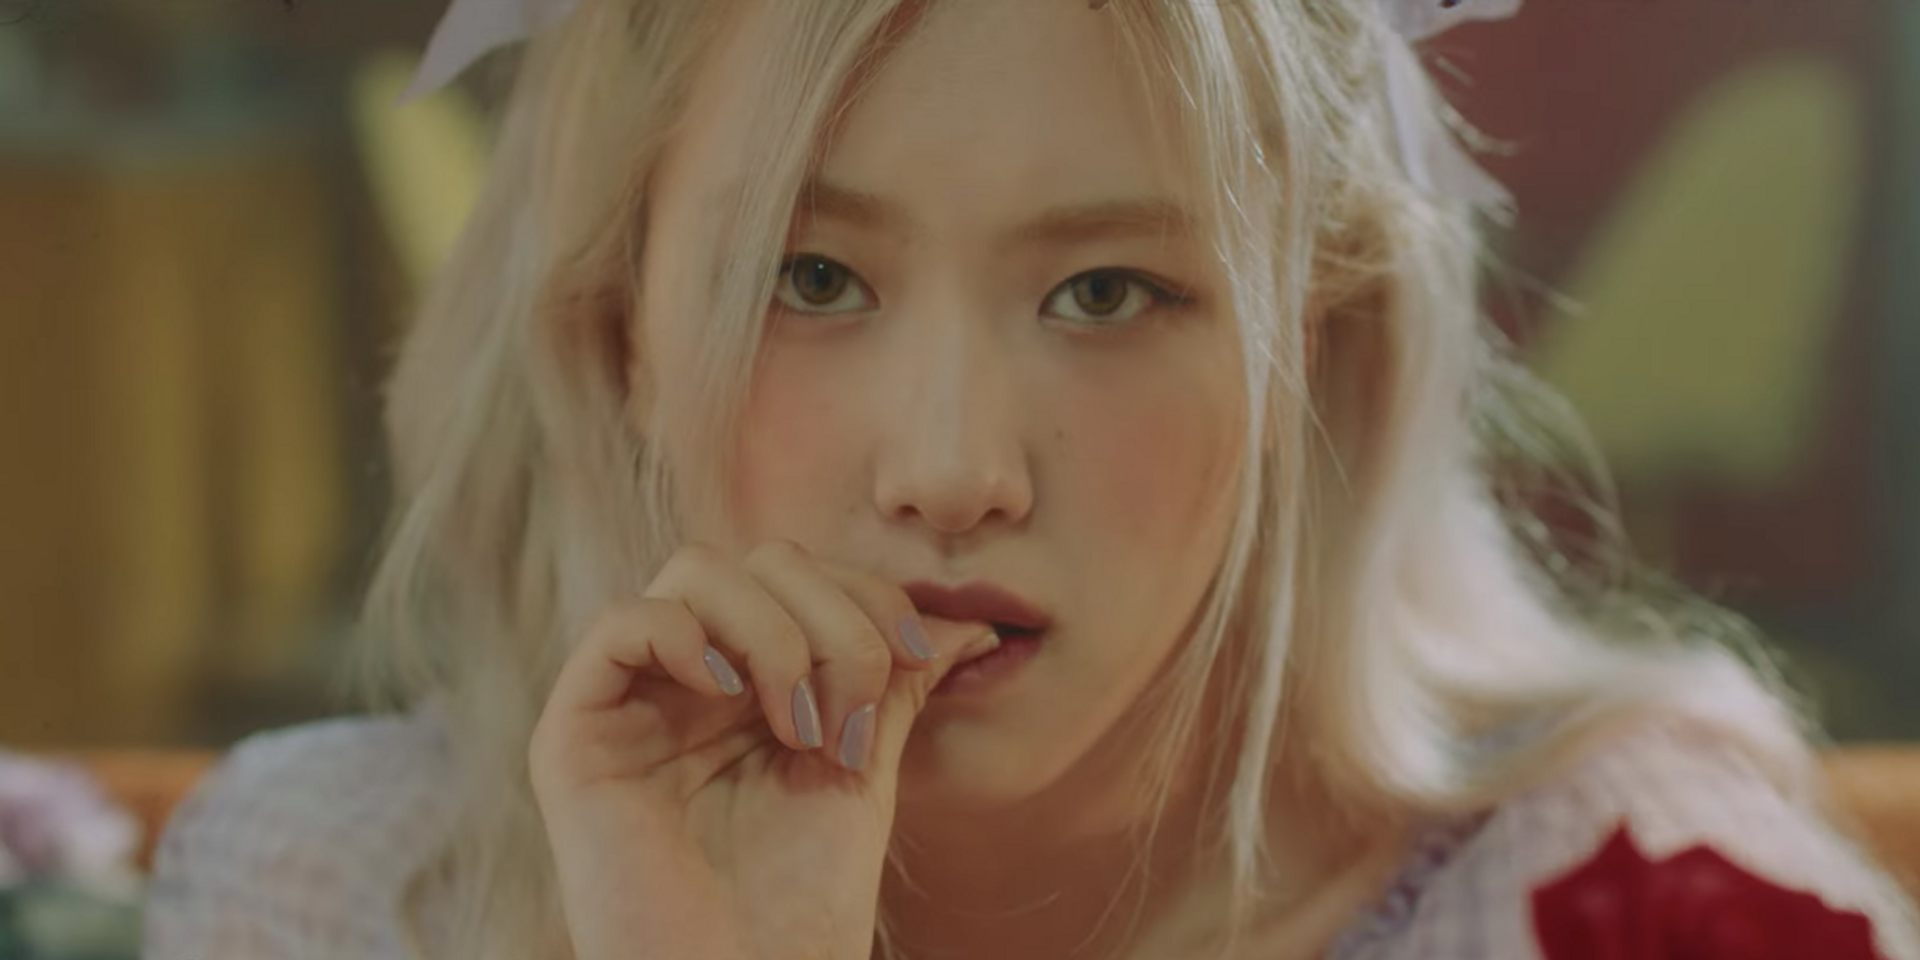 BLACKPINK's ROSÉ remembers the past in new music video for 'Gone' – watch